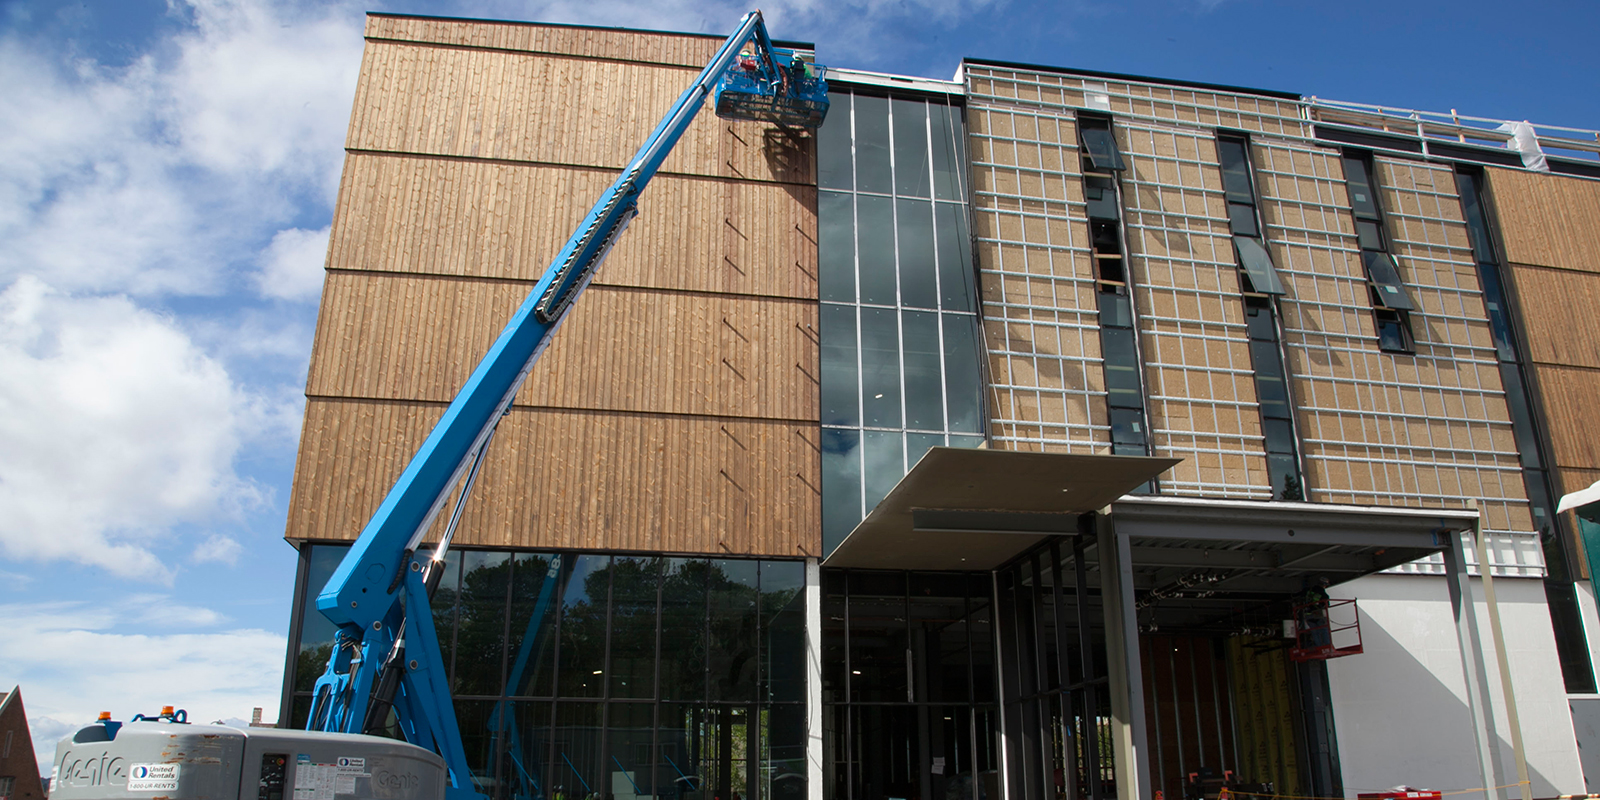 A crew member uses a lift to install siding on the New Burke exterior